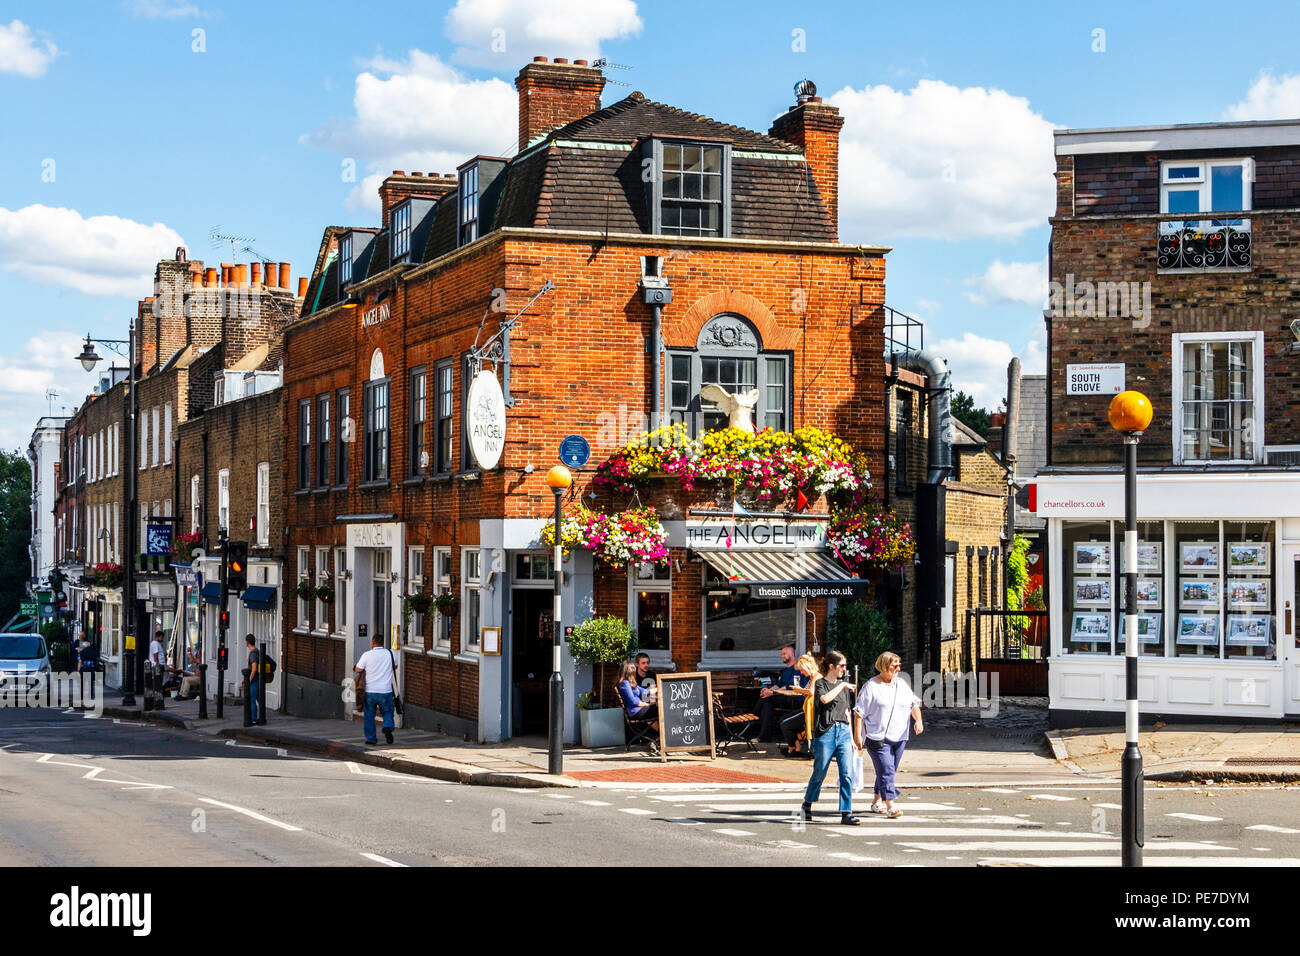 Customers drinking outside the historic Angel Inn in Highgate Village, London, UK during a heatwave Stock Photo